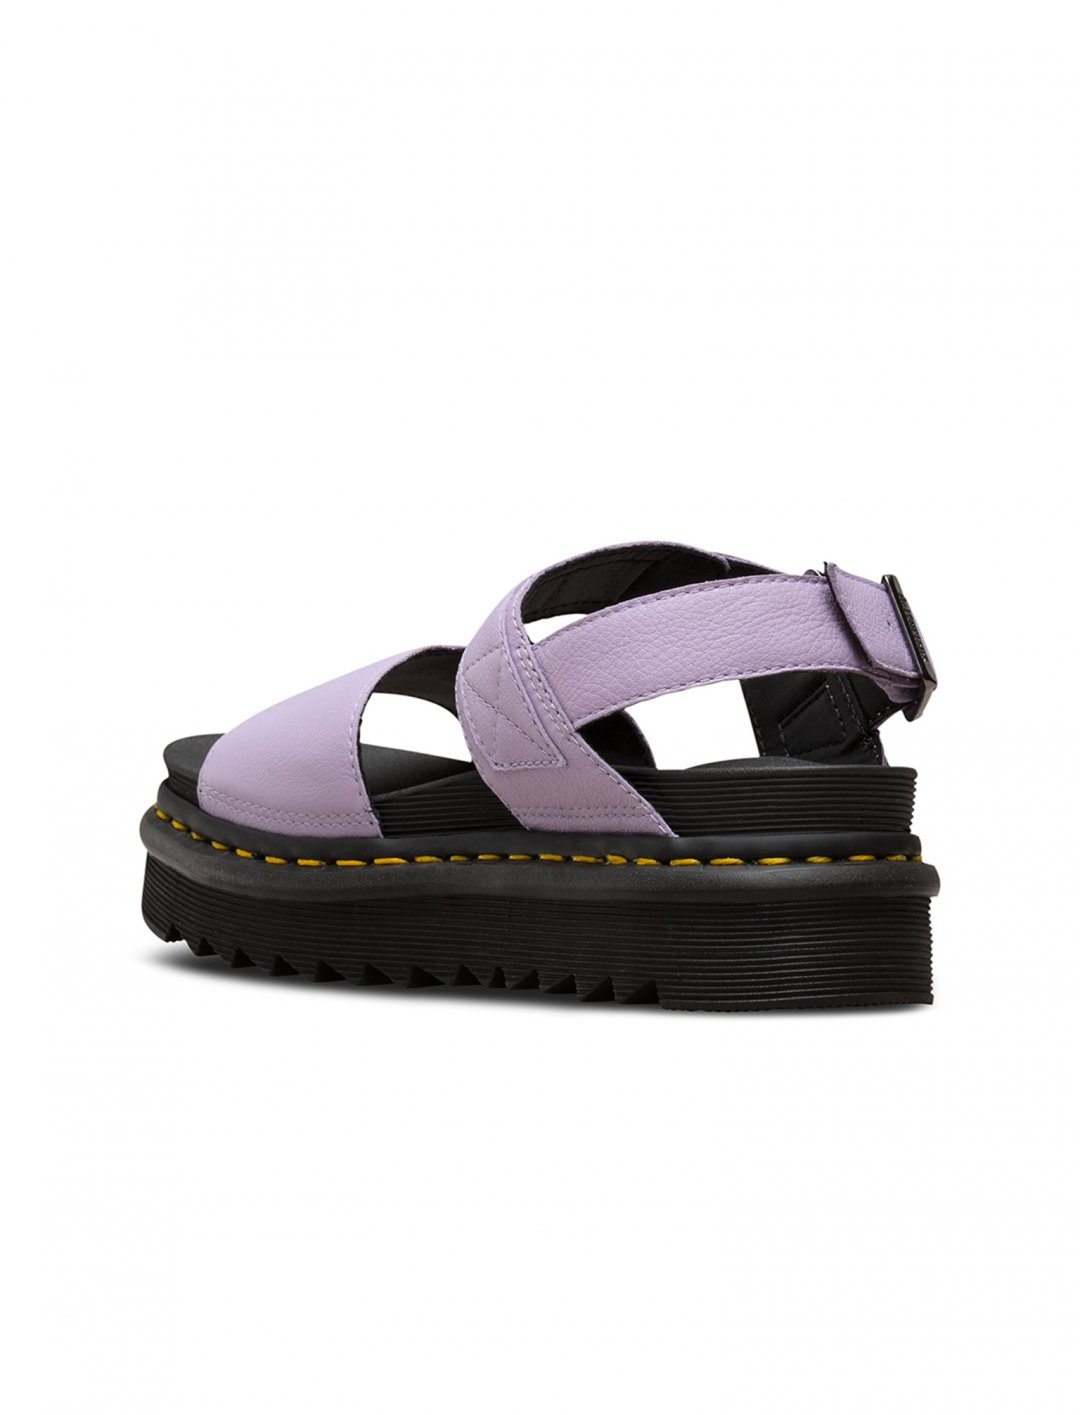 "Voss Virginia Sandals {""id"":12,""product_section_id"":1,""name"":""Shoes"",""order"":12} Dr. Martens"